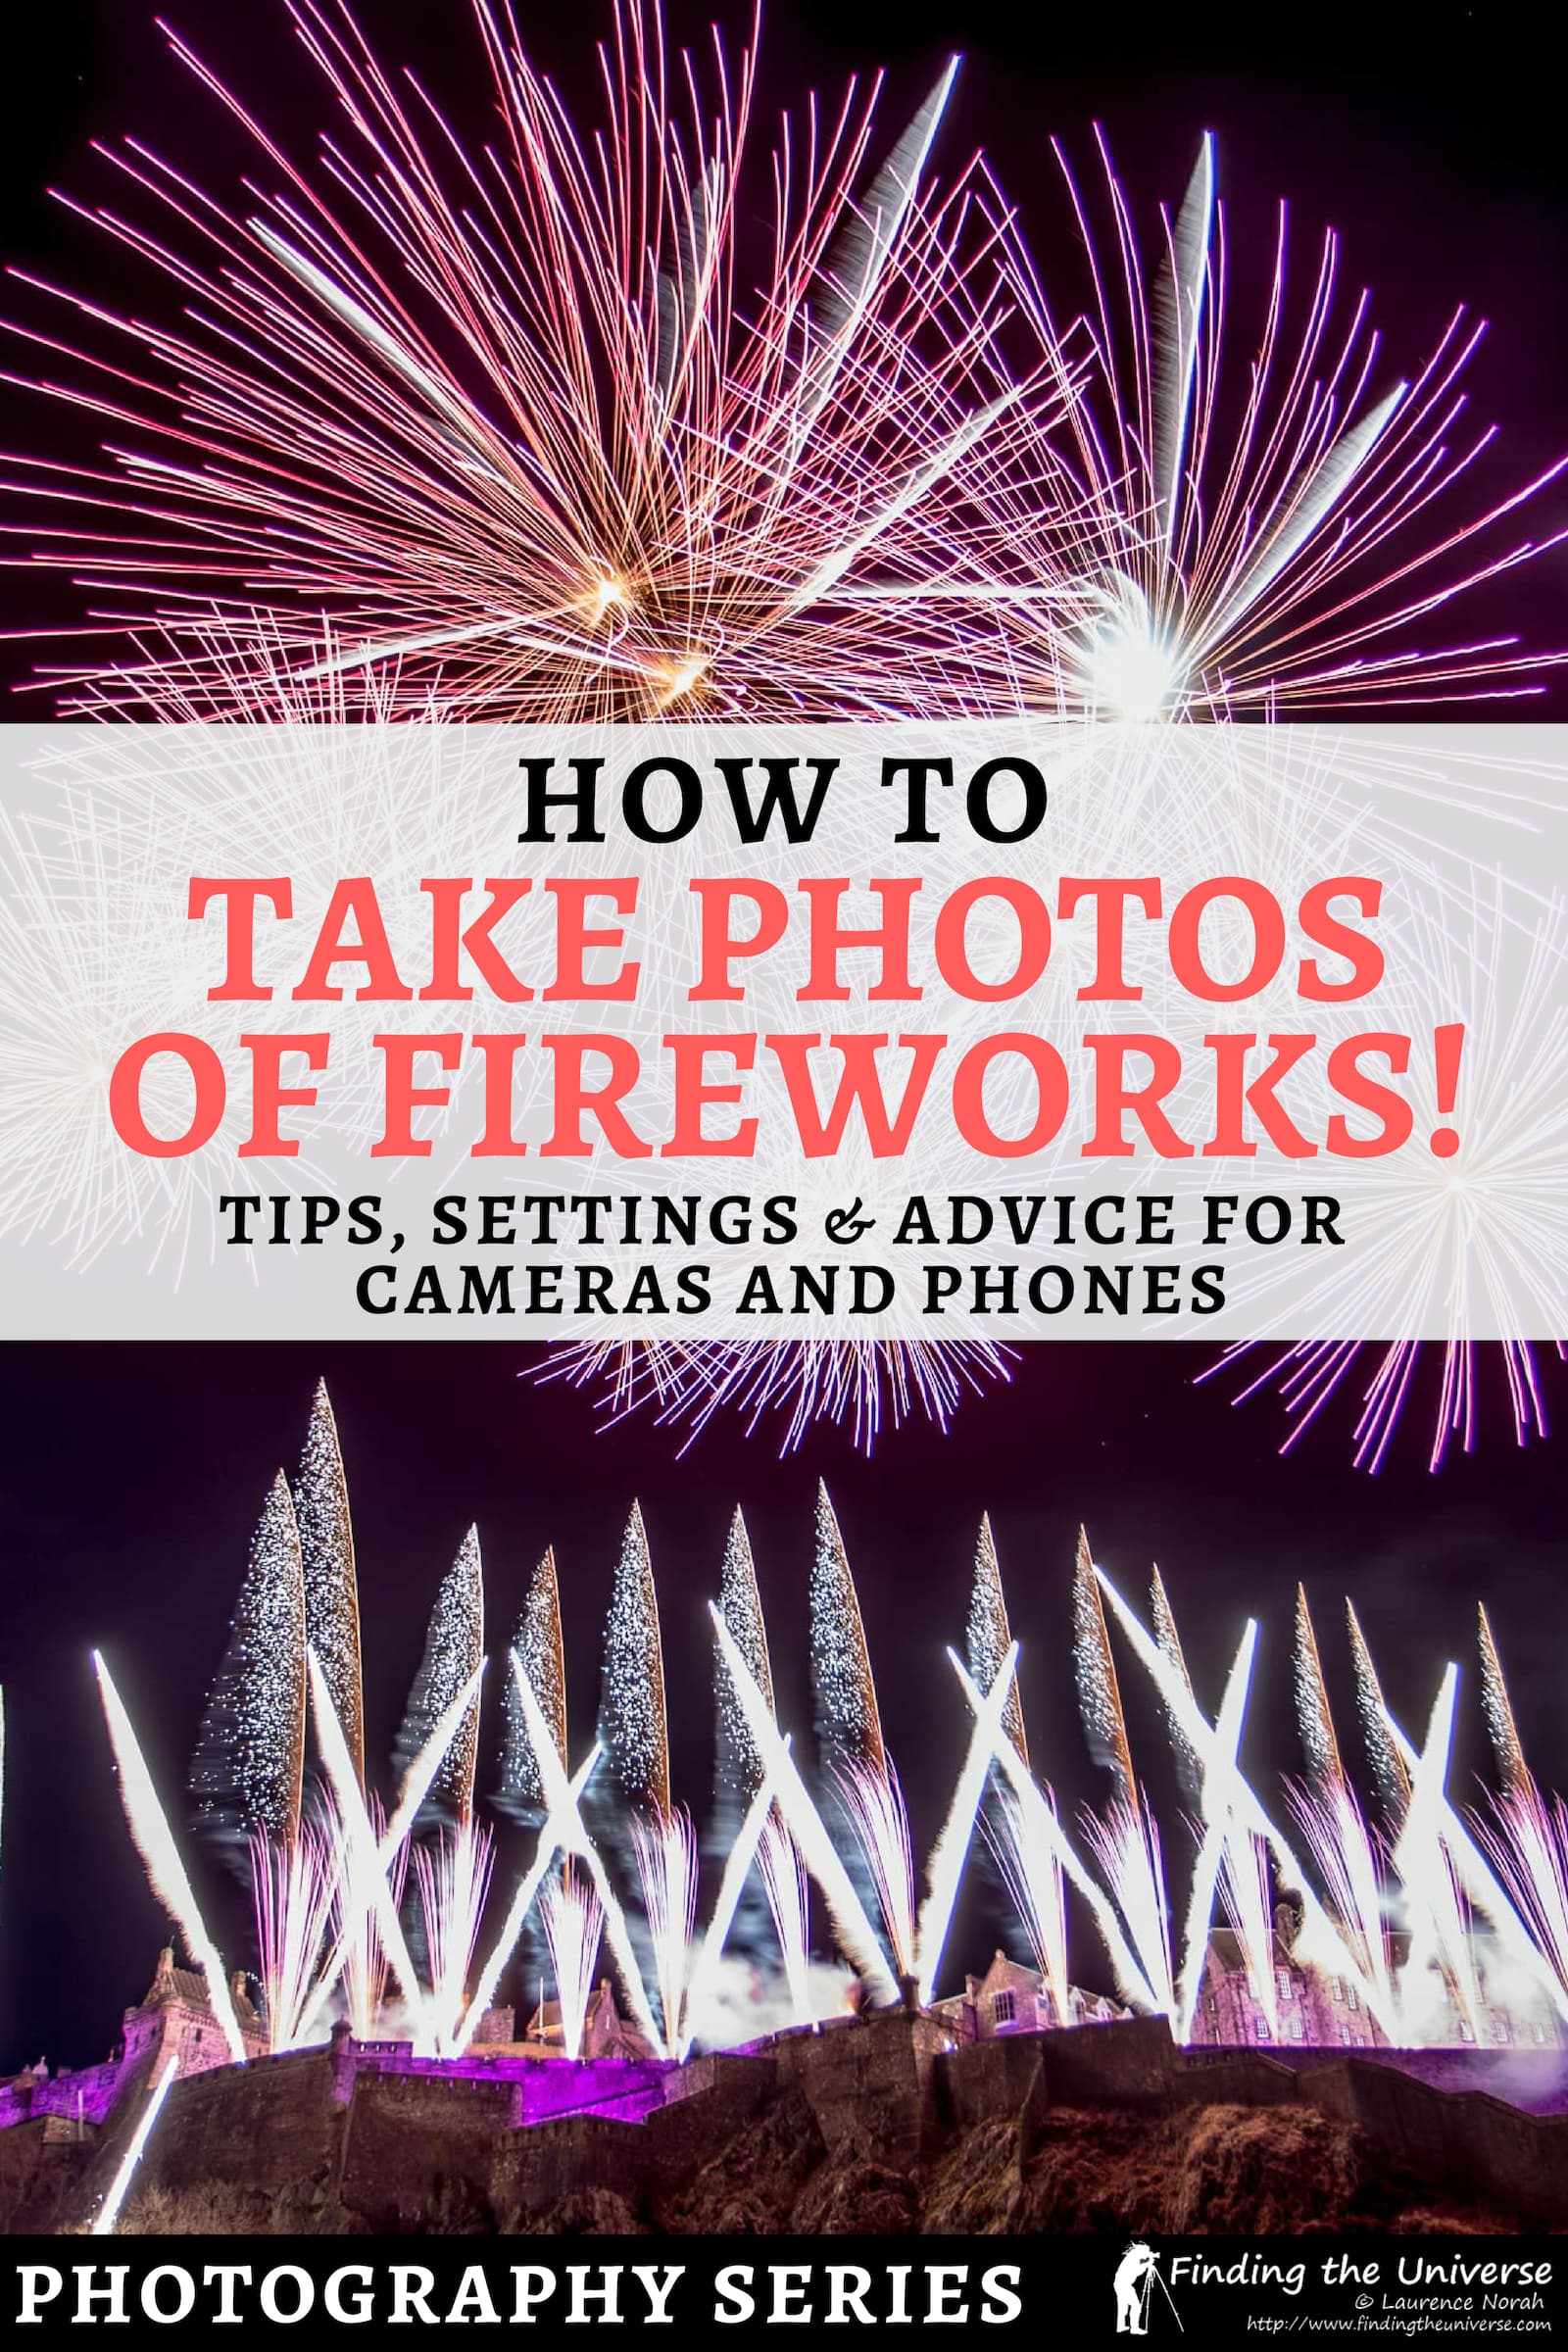 Ever wondered how to photograph fireworks? With this detailed guide, you'll get the perfect fireworks photos, whether you're using a camera or smartphone! With tips, advice and the camera settings you need for the best fireworks pictures #fireworks #photography